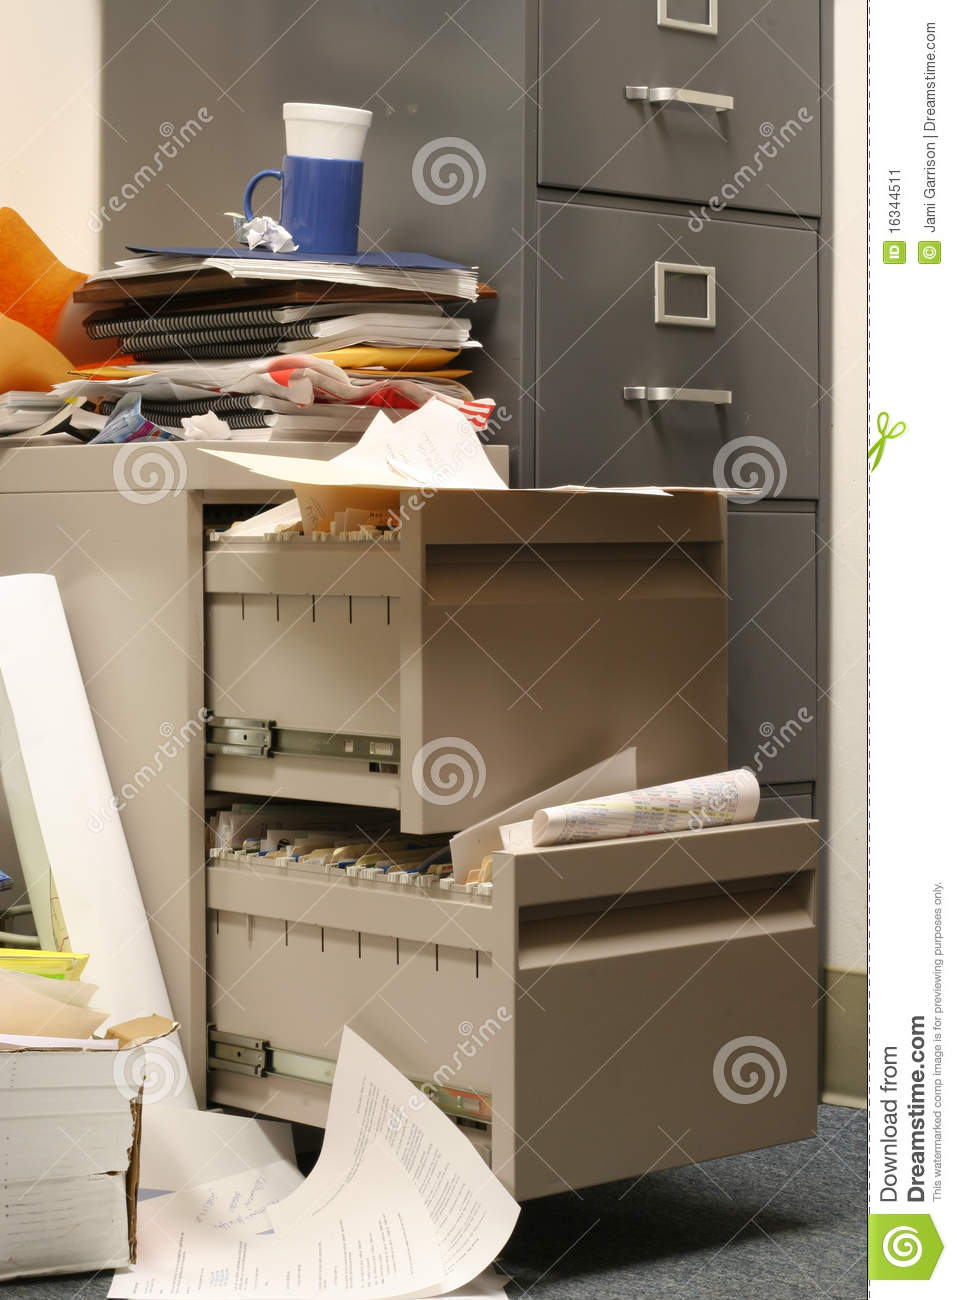 Messy Filing Cabinet Stock Image Image Of Compartment